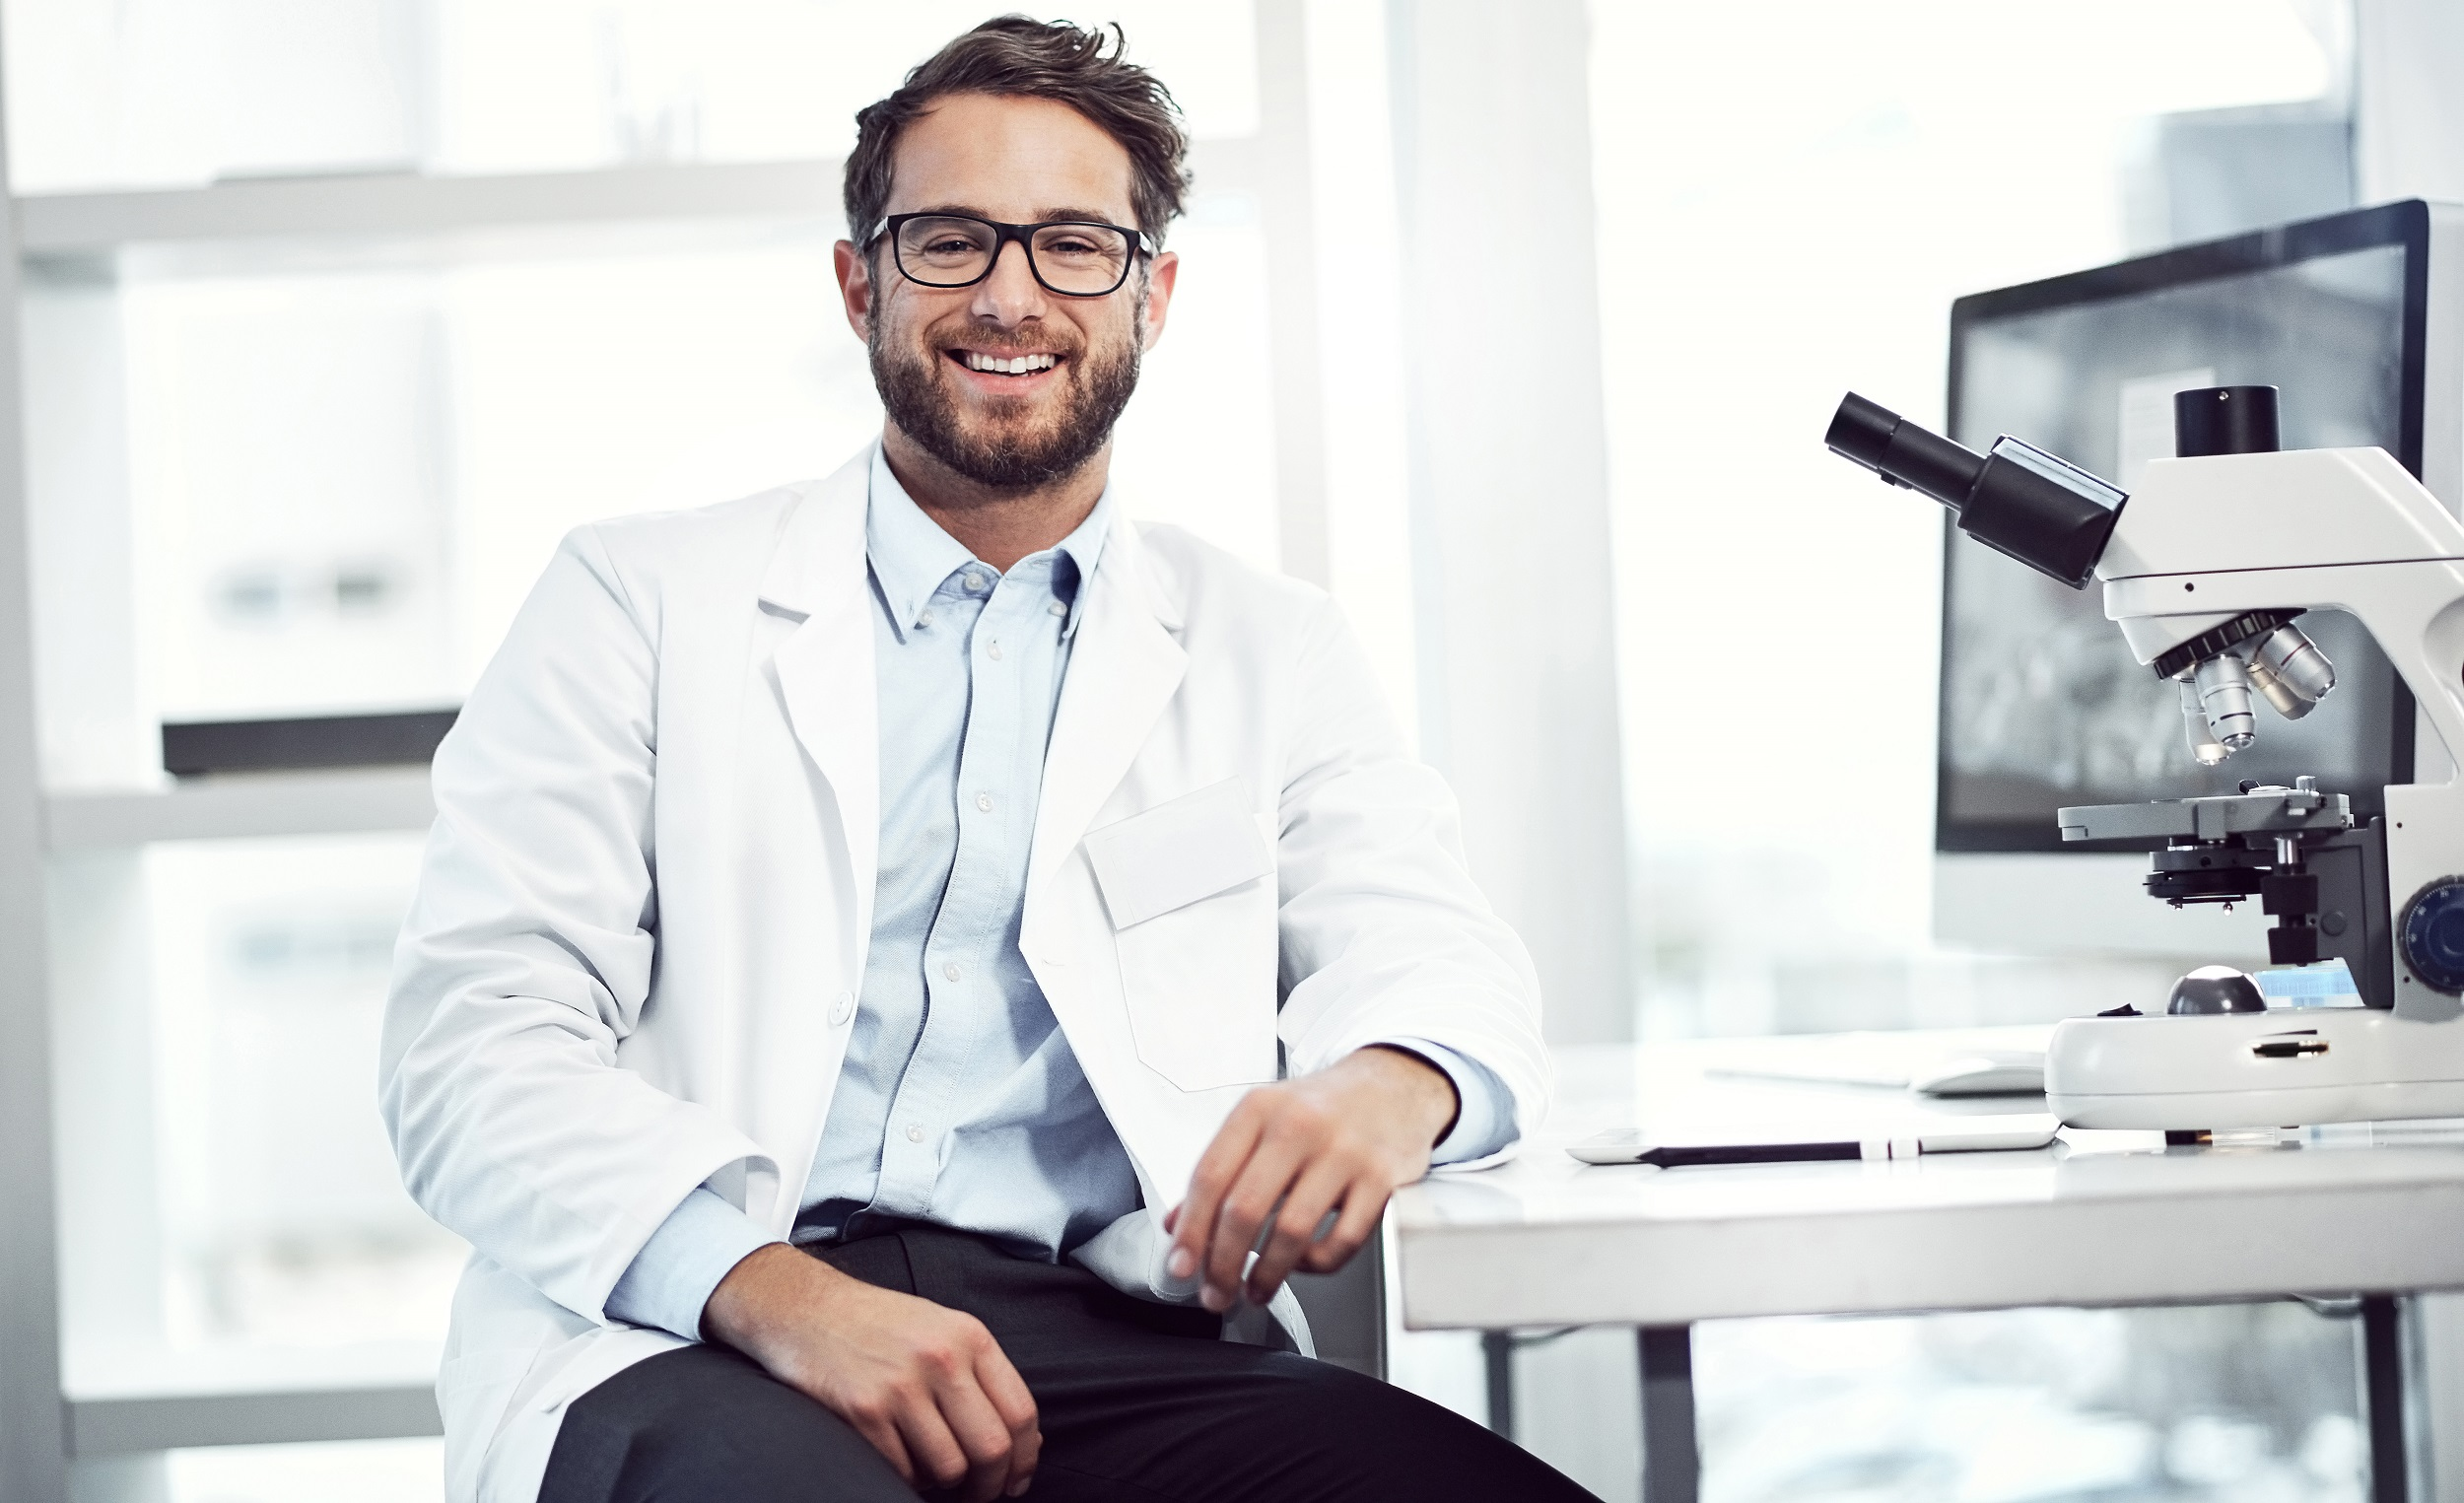 A Confident Doctor Is A Good Doctor